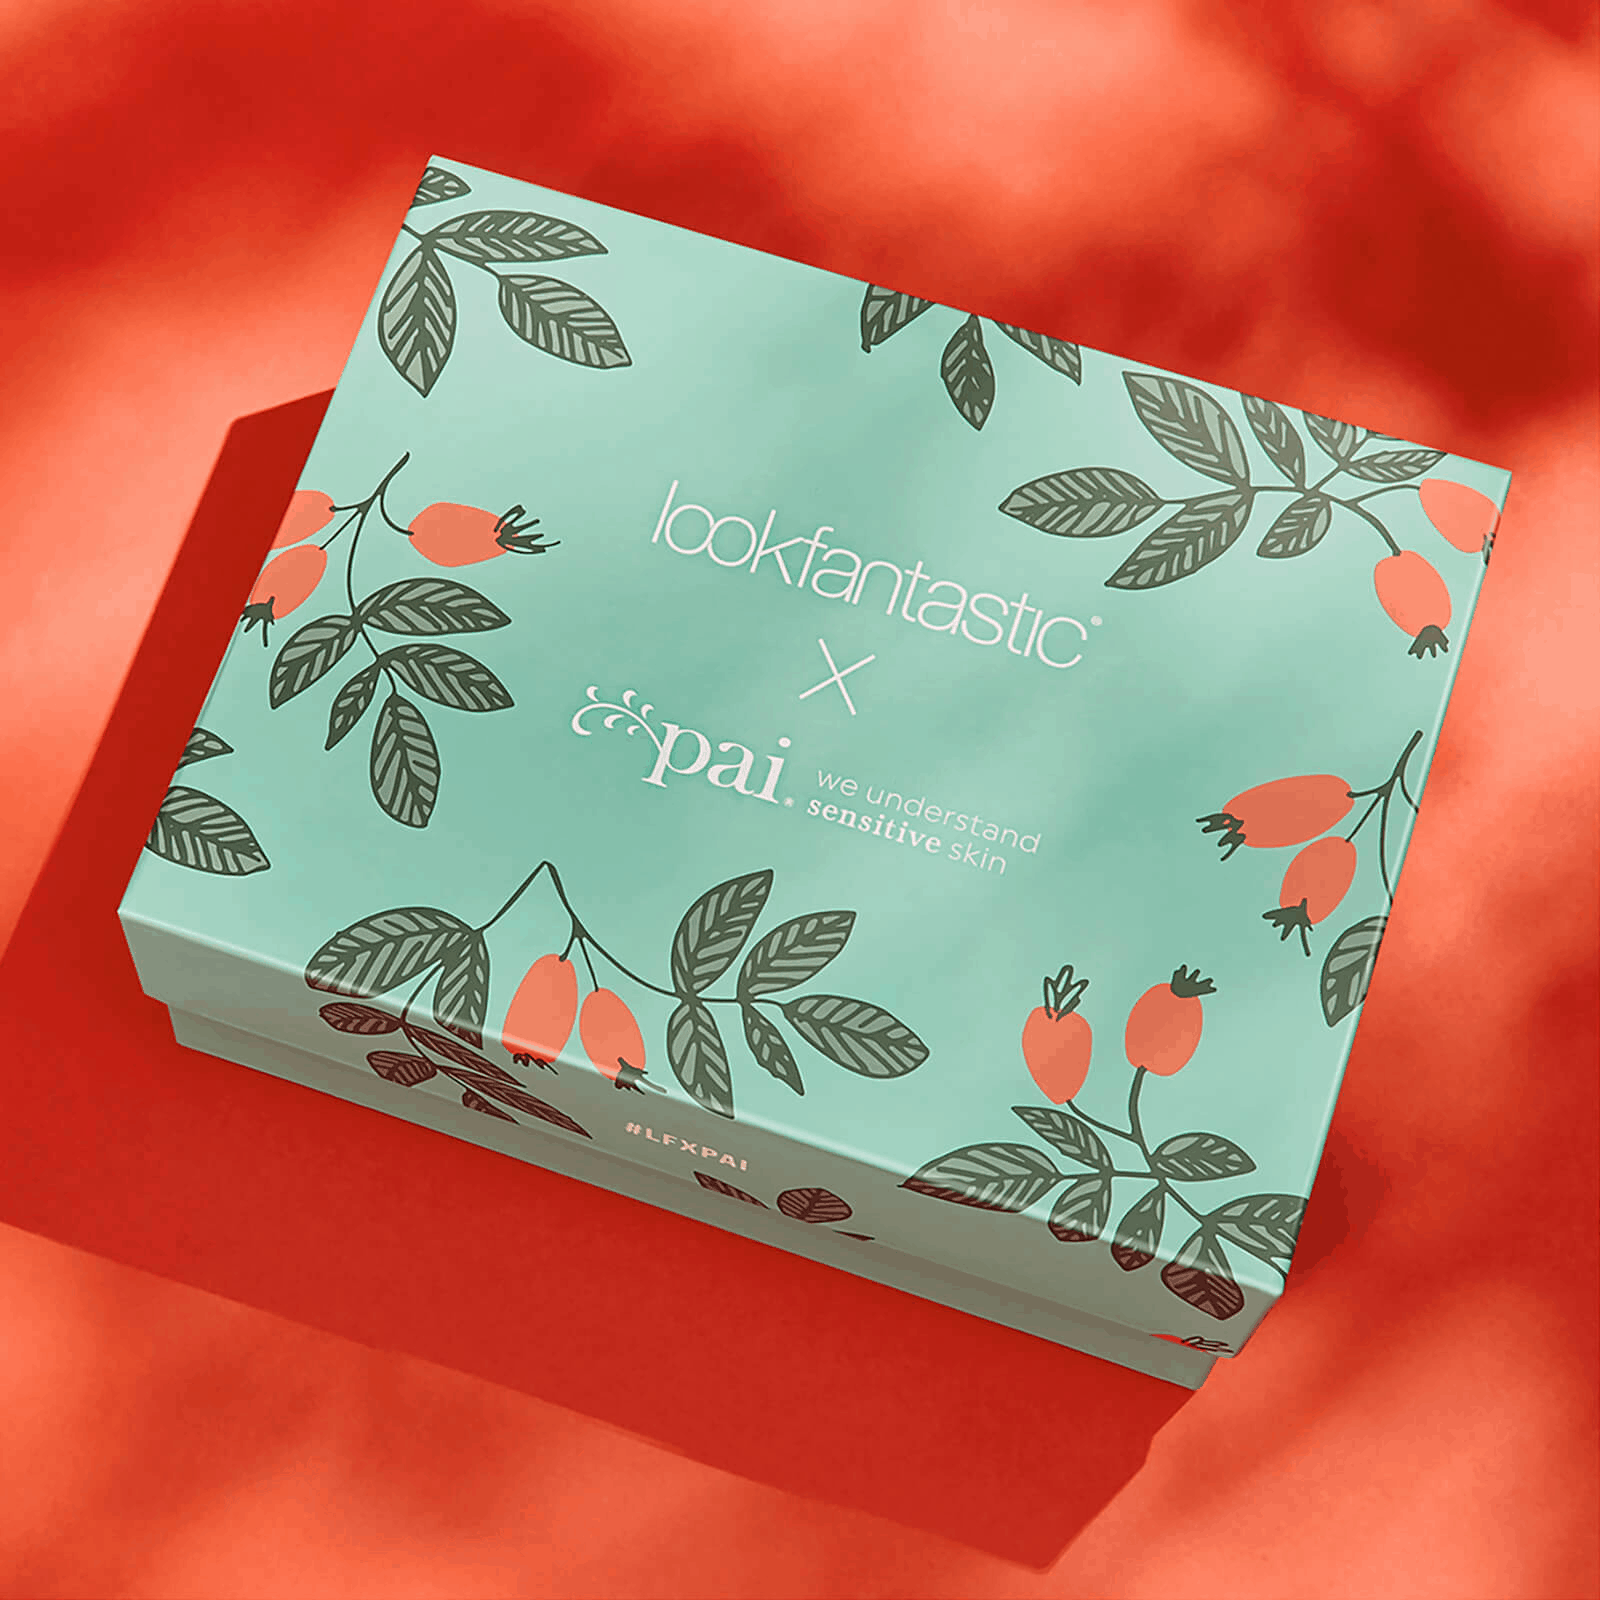 Look Fantastic x Pai Skincare Limited Edition Box Available Now + Full Spoilers!